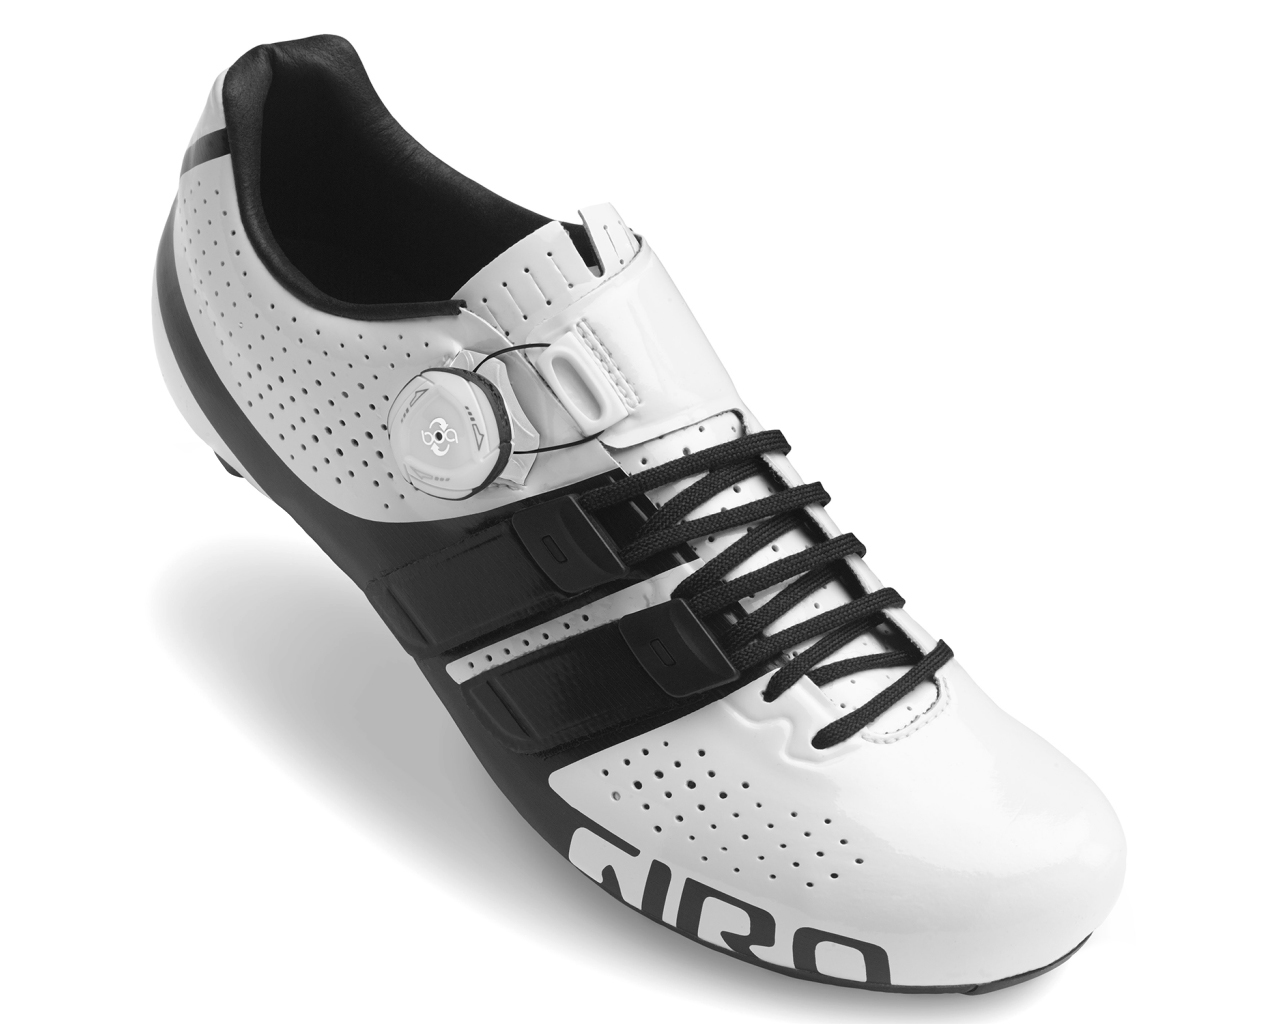 27491_giro_factor_techlace_road_cycling_shoes